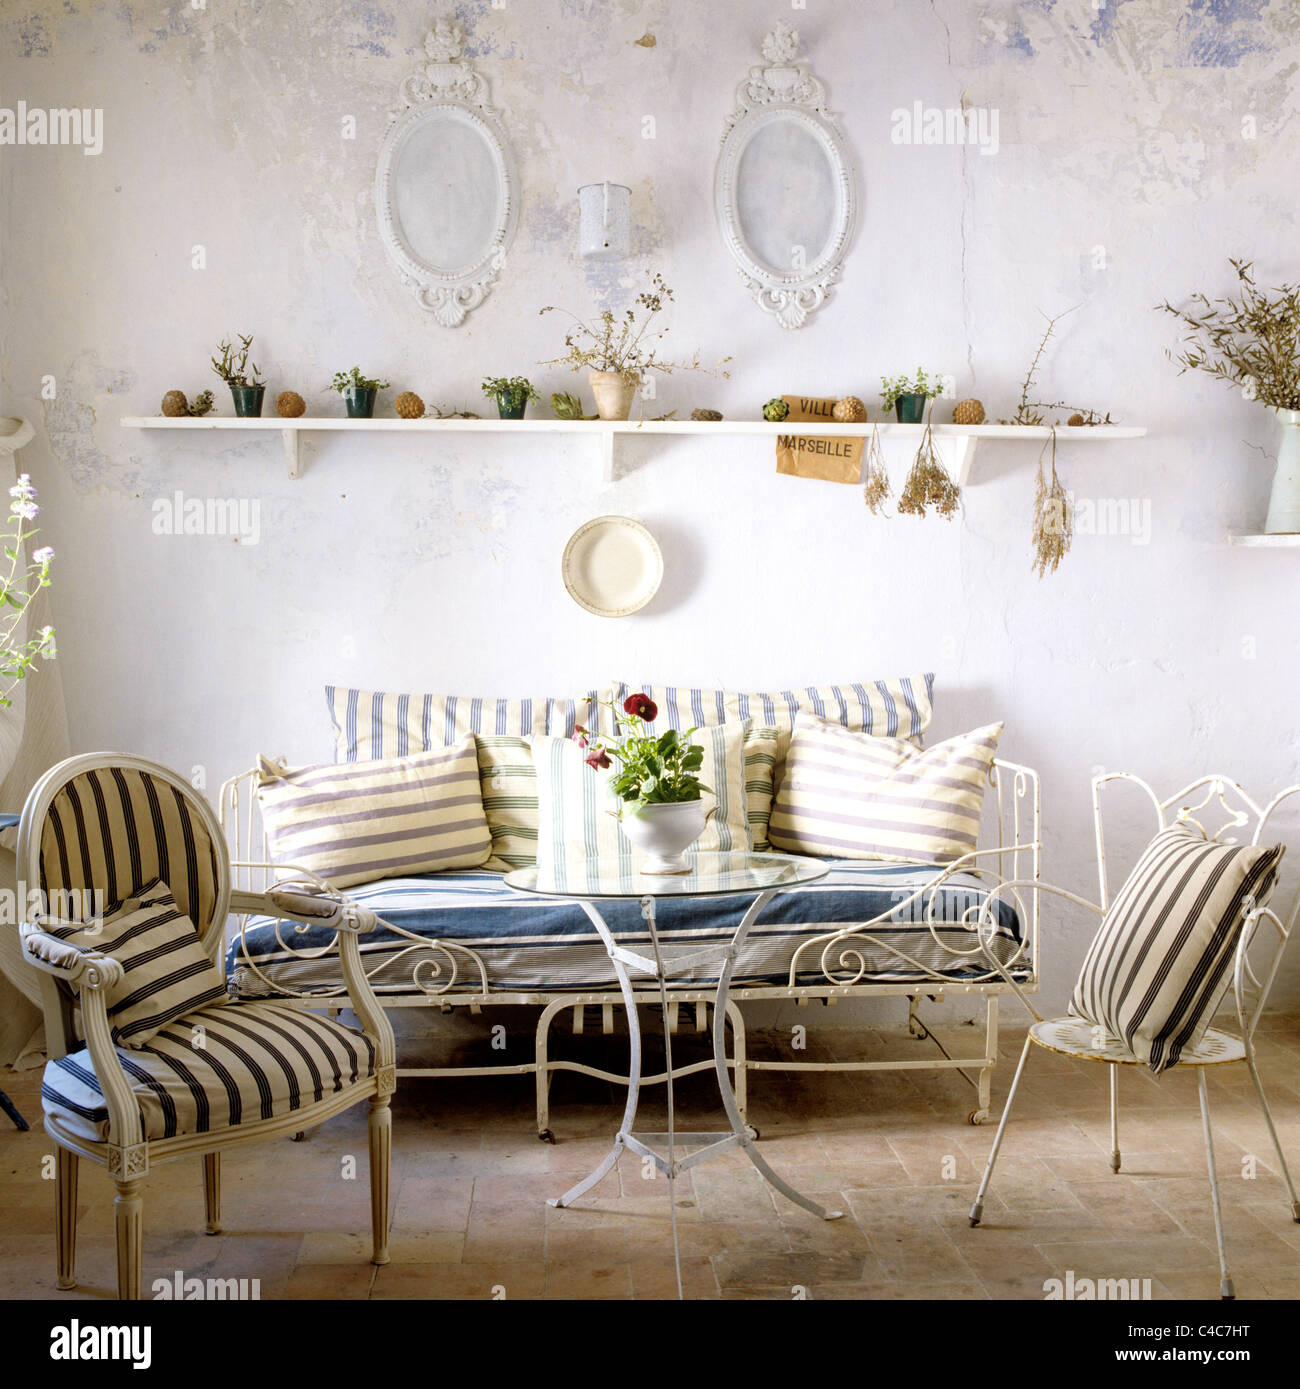 Living Room With Whitewashed Walls Wrought Iron Furniture And